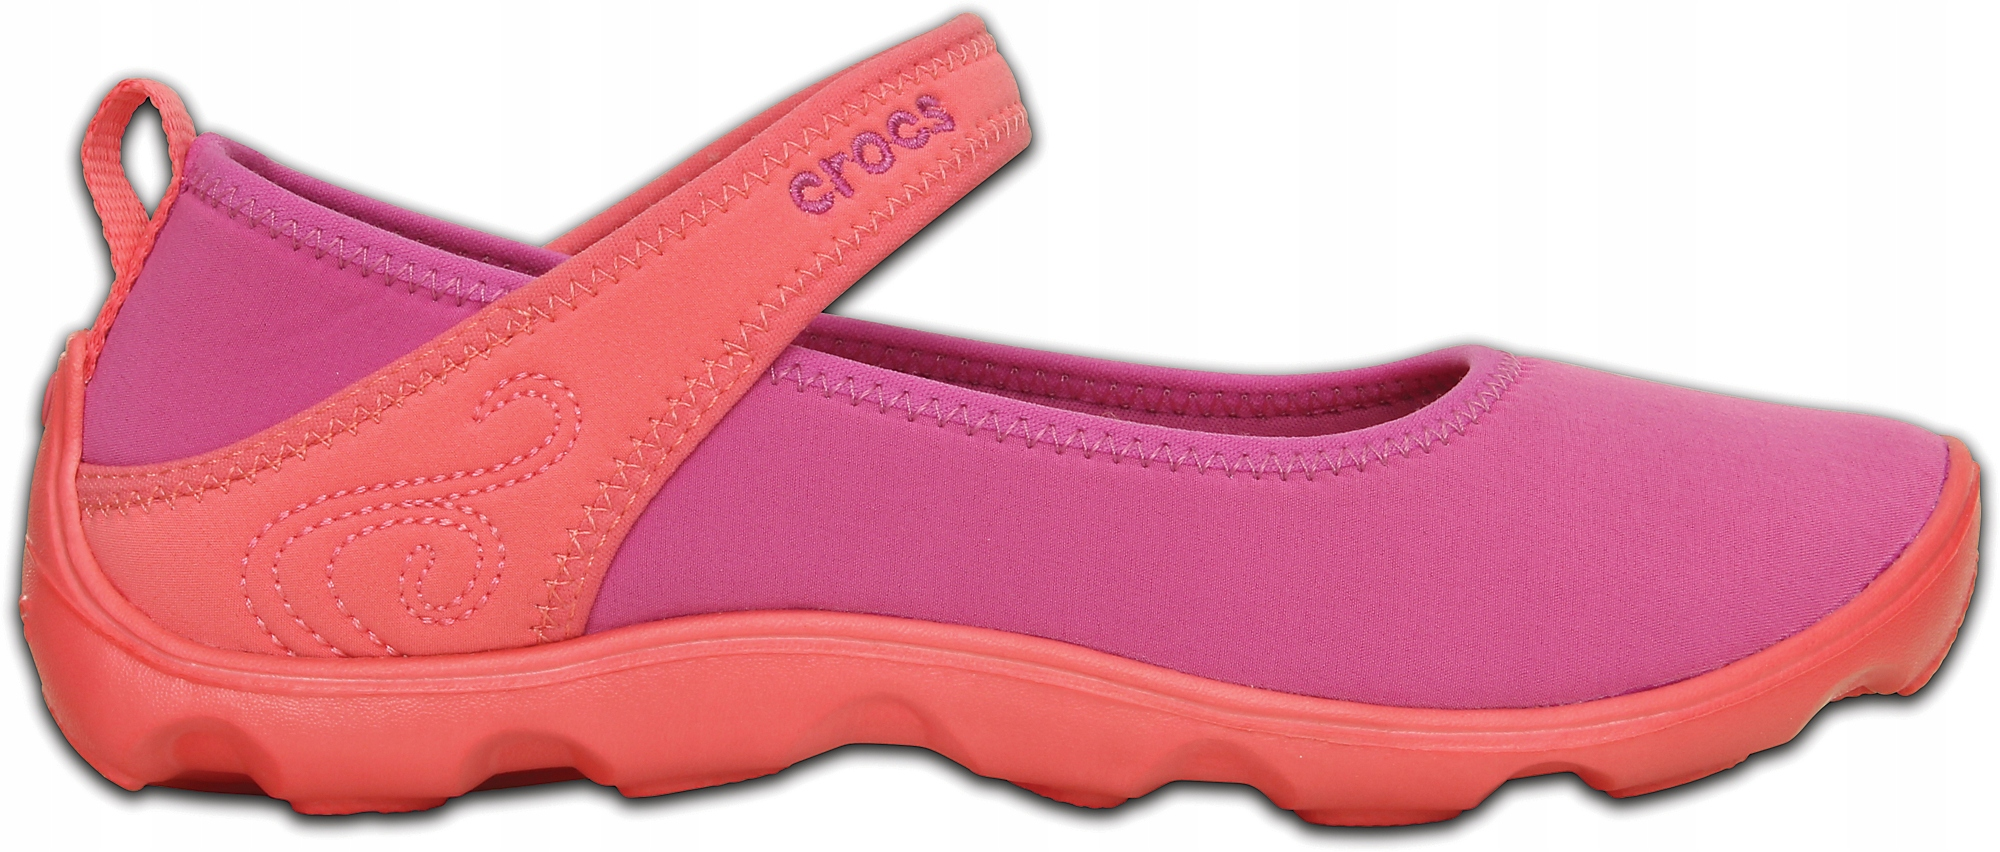 Crocs Duet busy day mary jane fiolet 32-33 (J1)